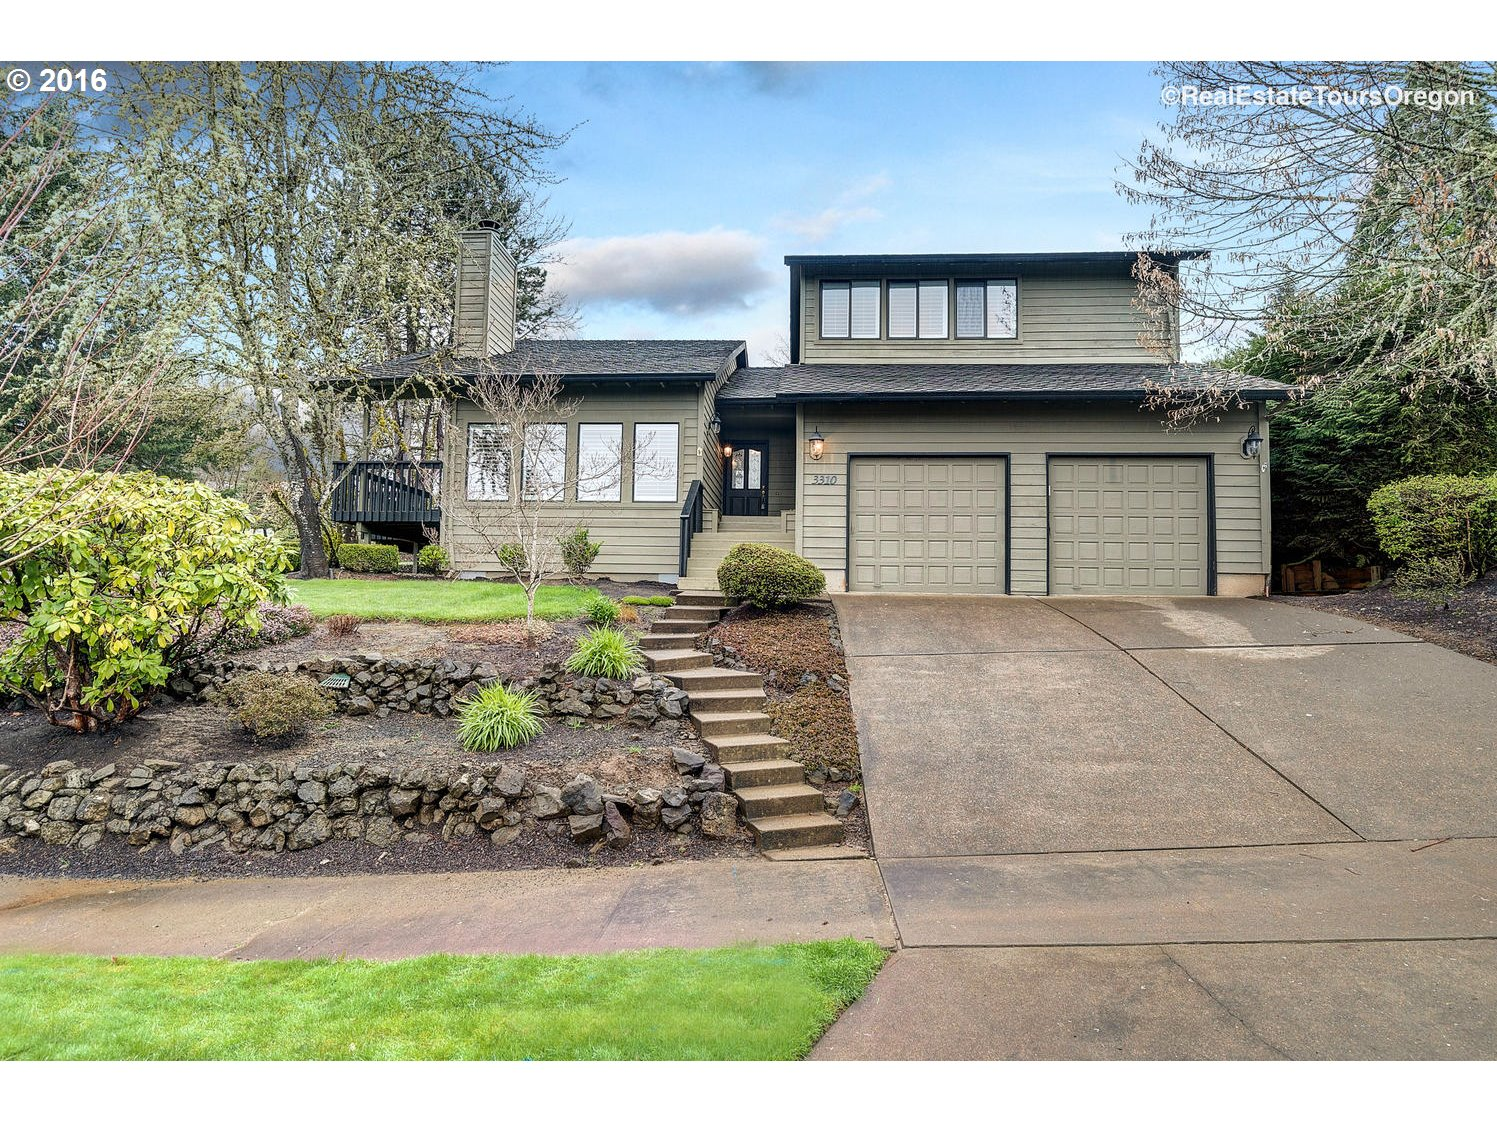 3310 Knighton Way, Forest Grove, OR